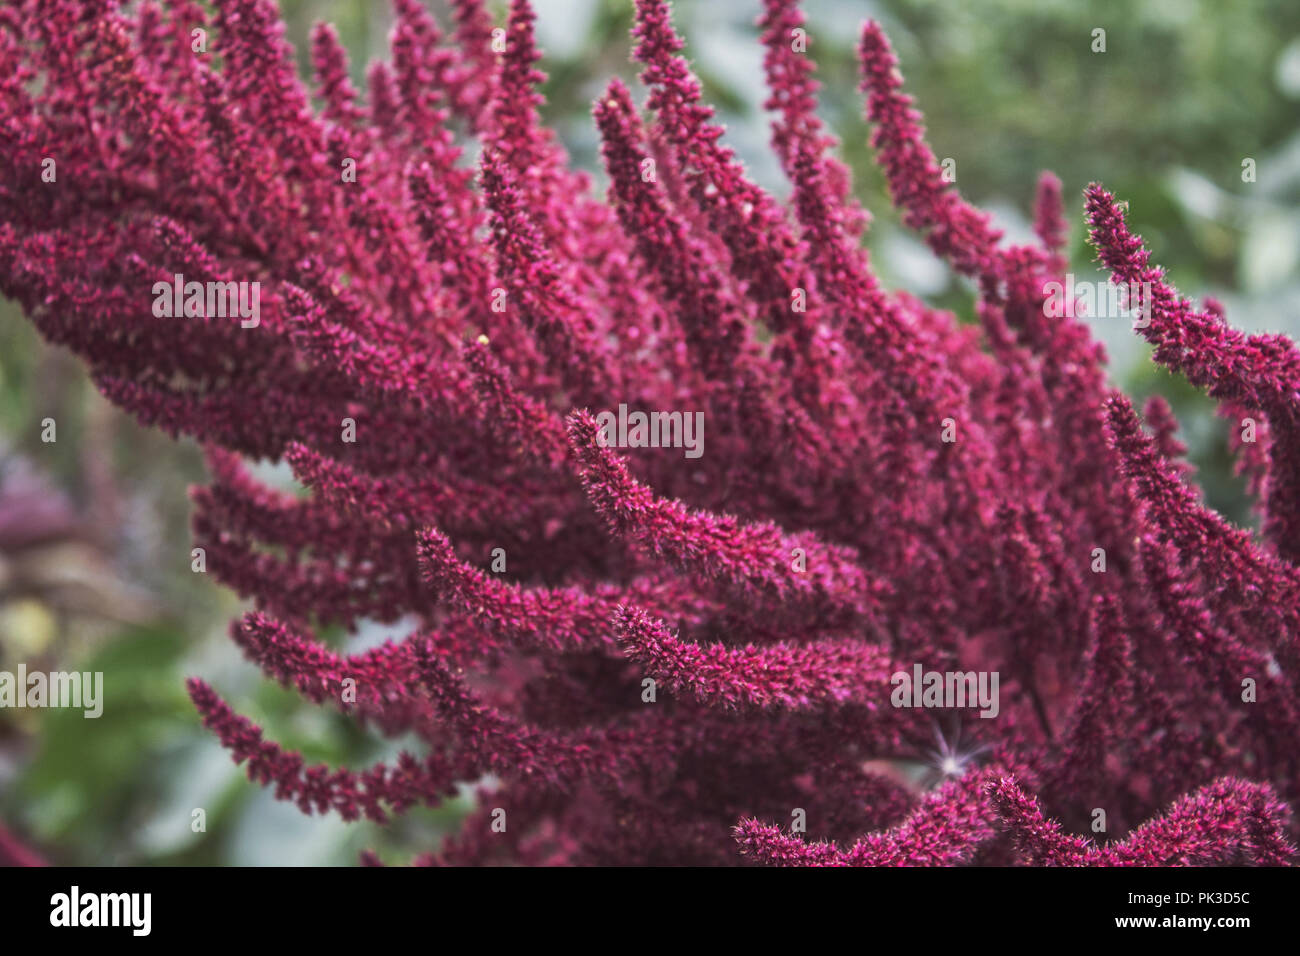 Ornamental purple inflorescences of amaranth. Bright fluffy blossom. Purple plant. Stock Photo